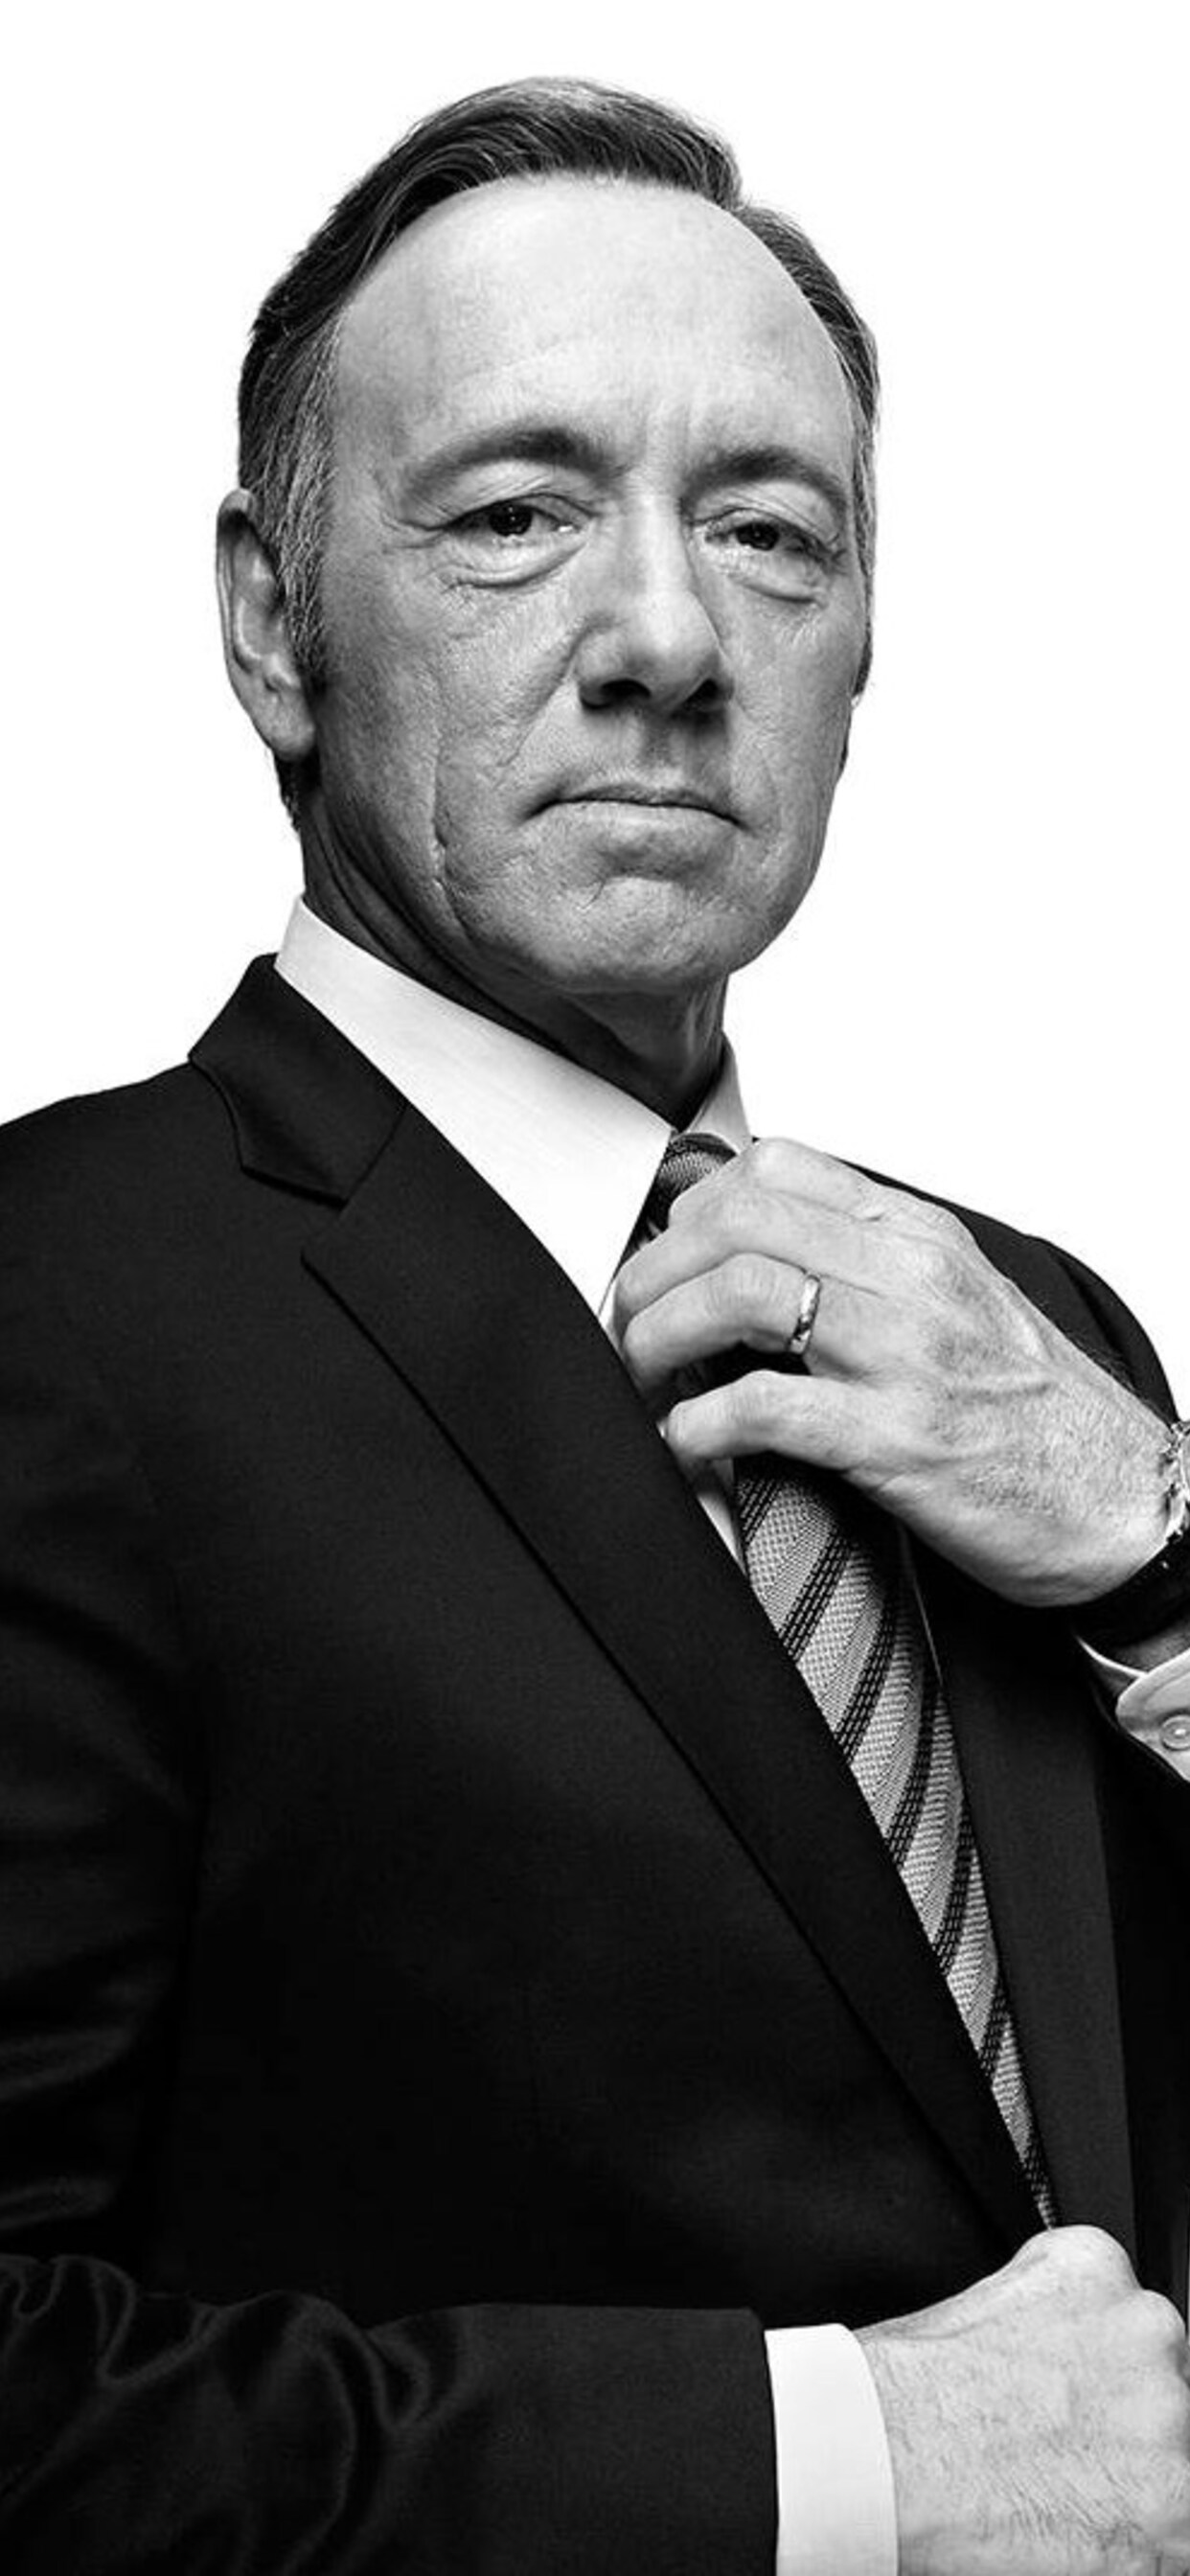 1242x2688 House Of Cards Kevin Iphone Xs Max Hd 4k Wallpapers